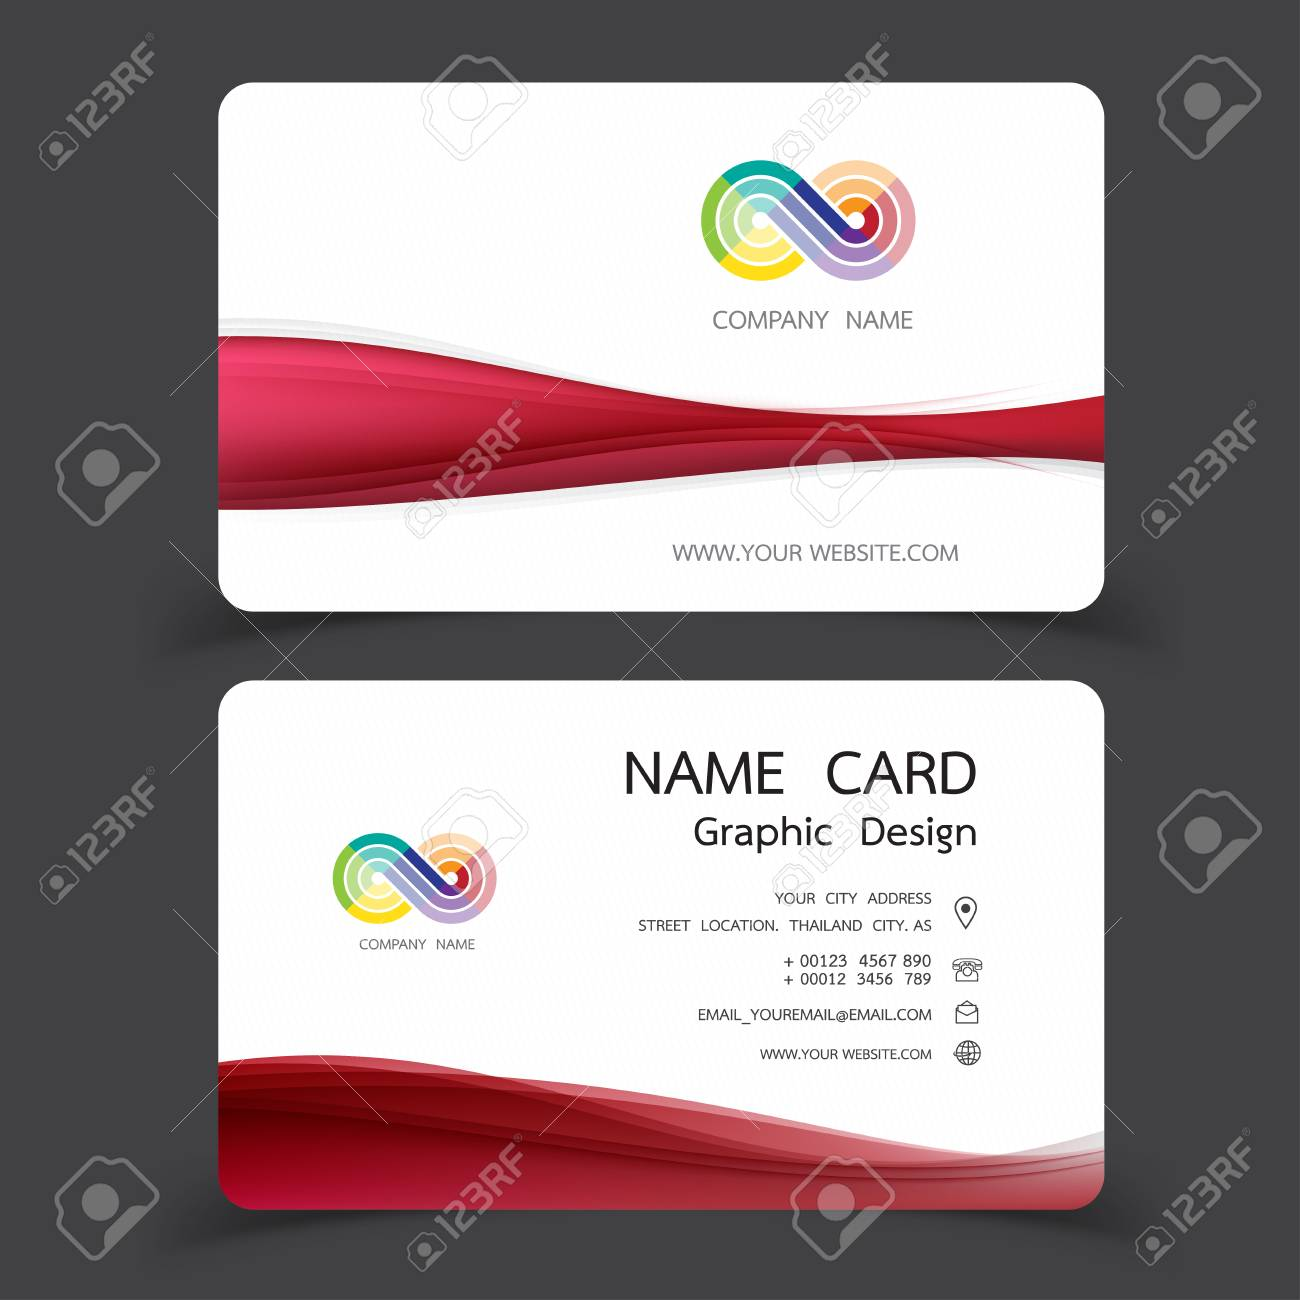 Business card design set modern creative business card template business card design set modern creative business card template vector illustrations stock vector colourmoves